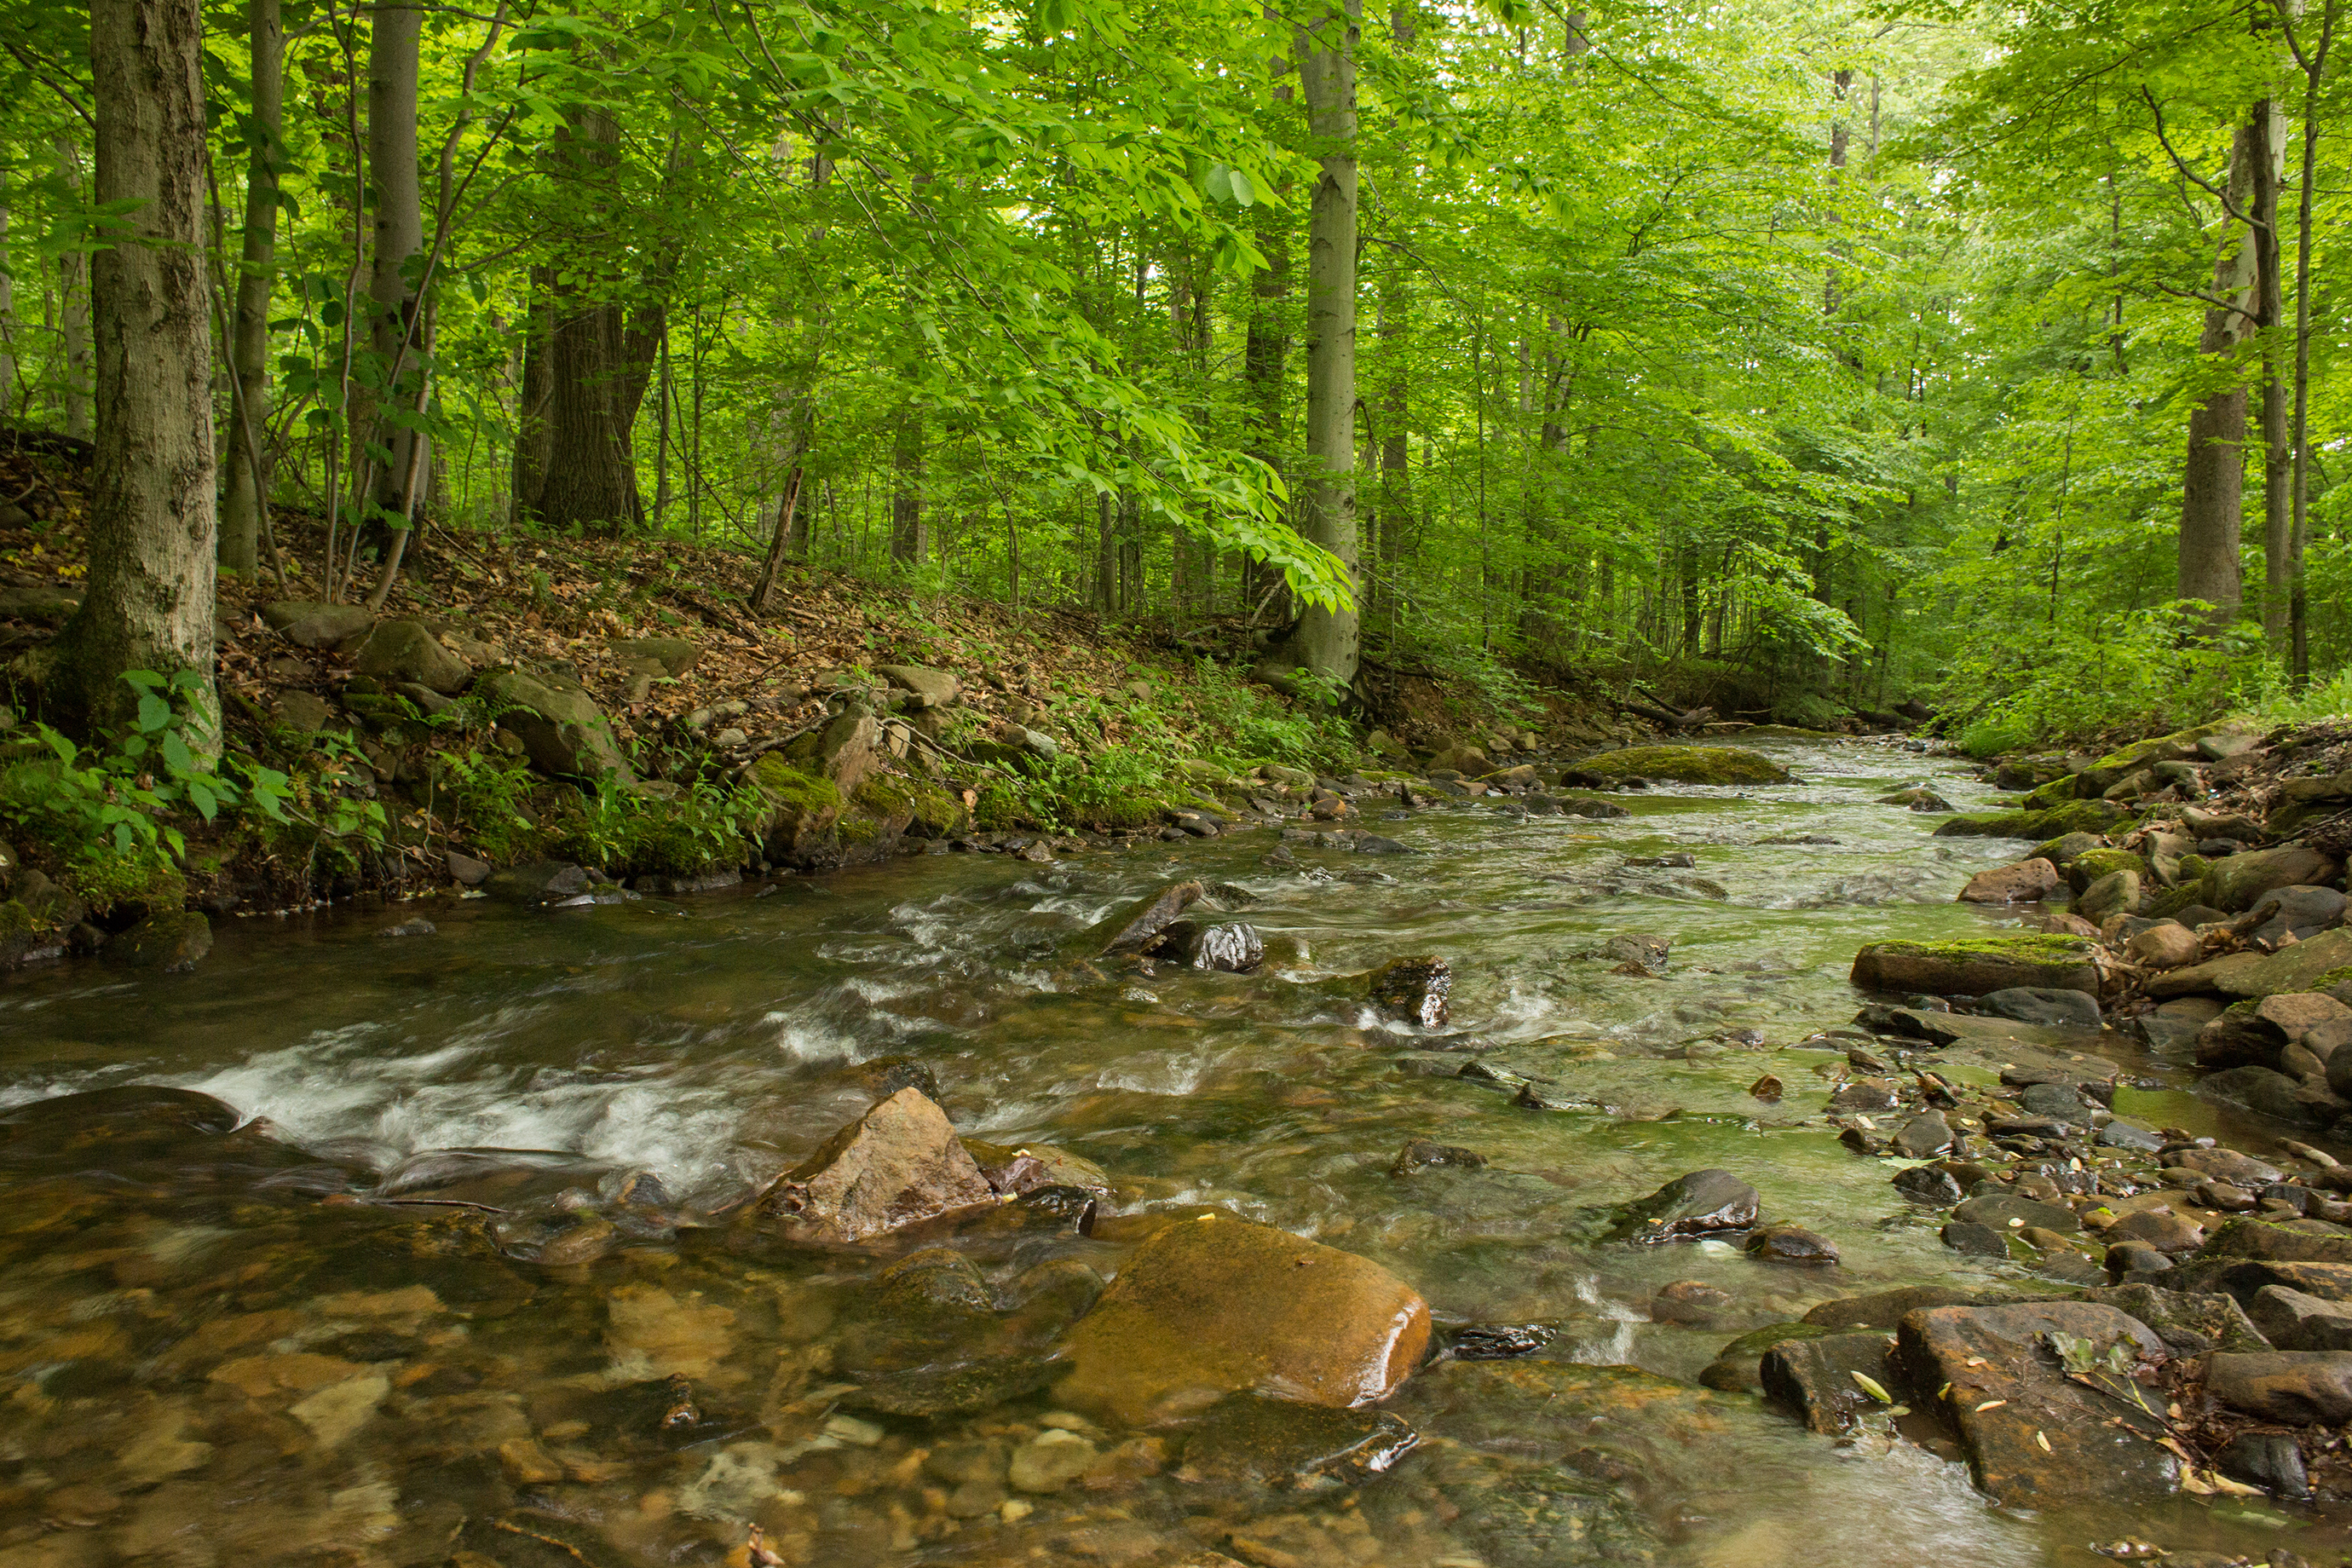 The nature reserve gets its name from Powdermill Run, a stream that is among the highest quality in the state. Photo by Pamela Curtin, PNR